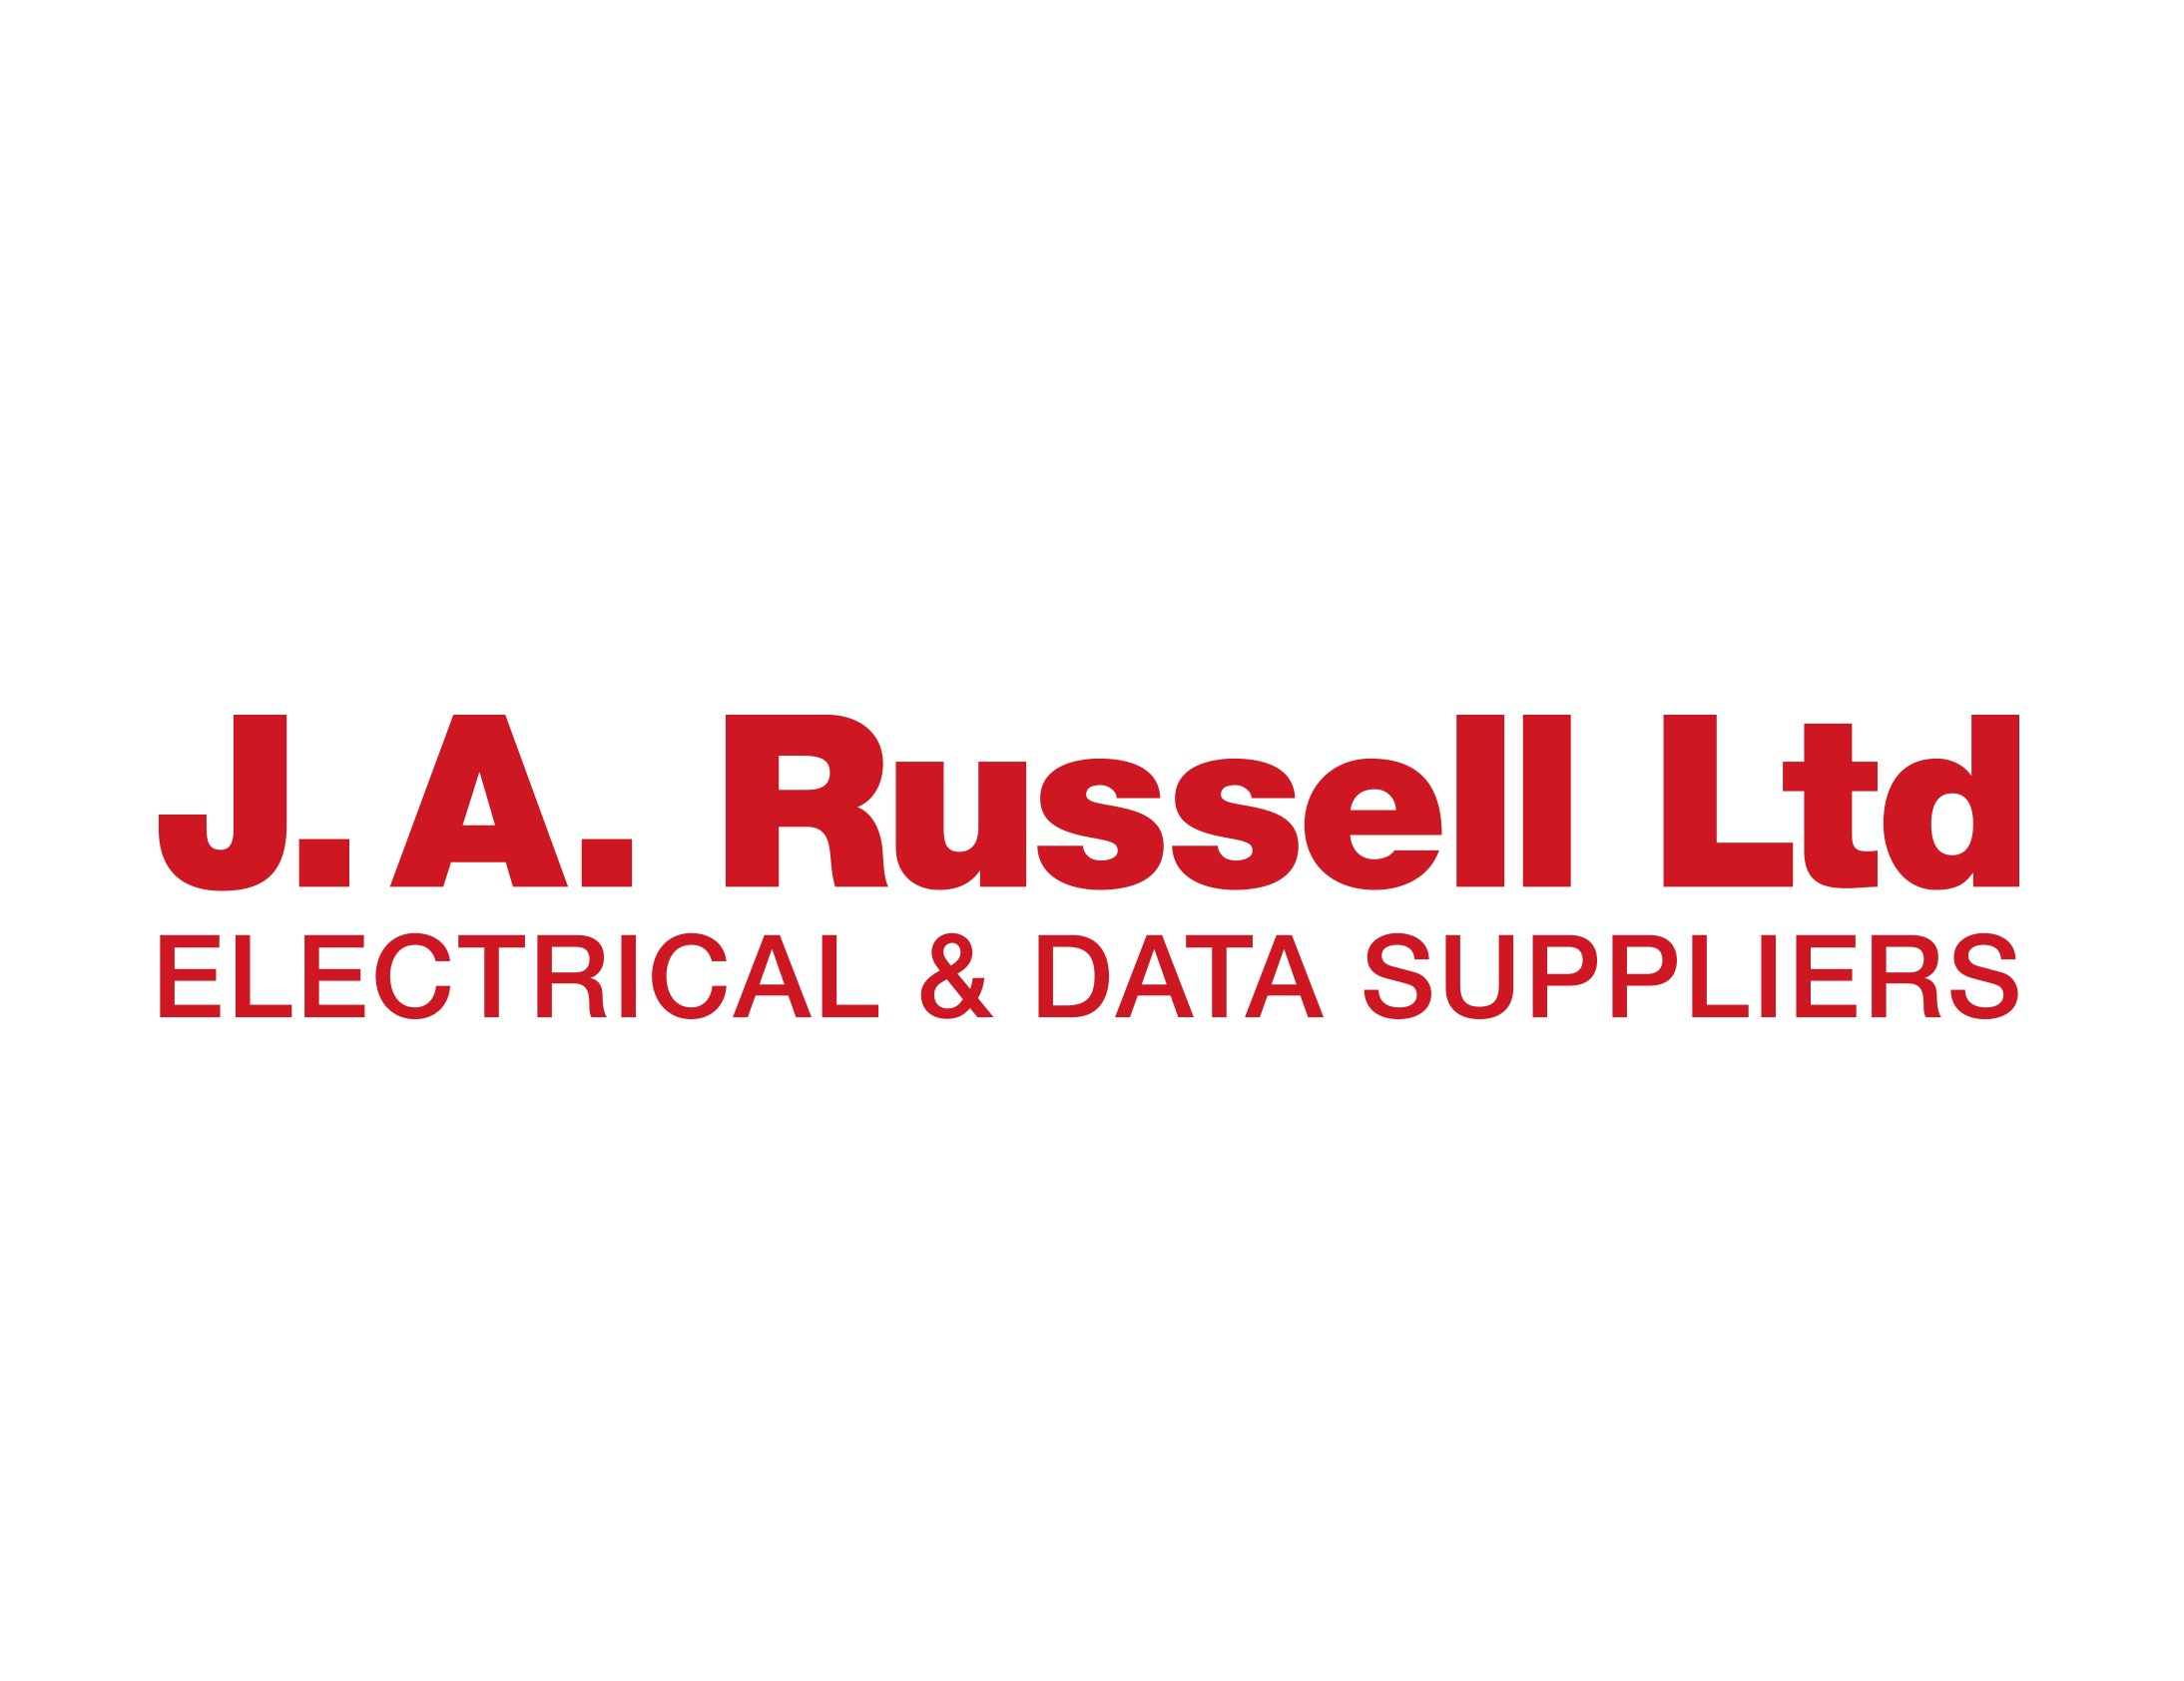 J. A. Russell Limited